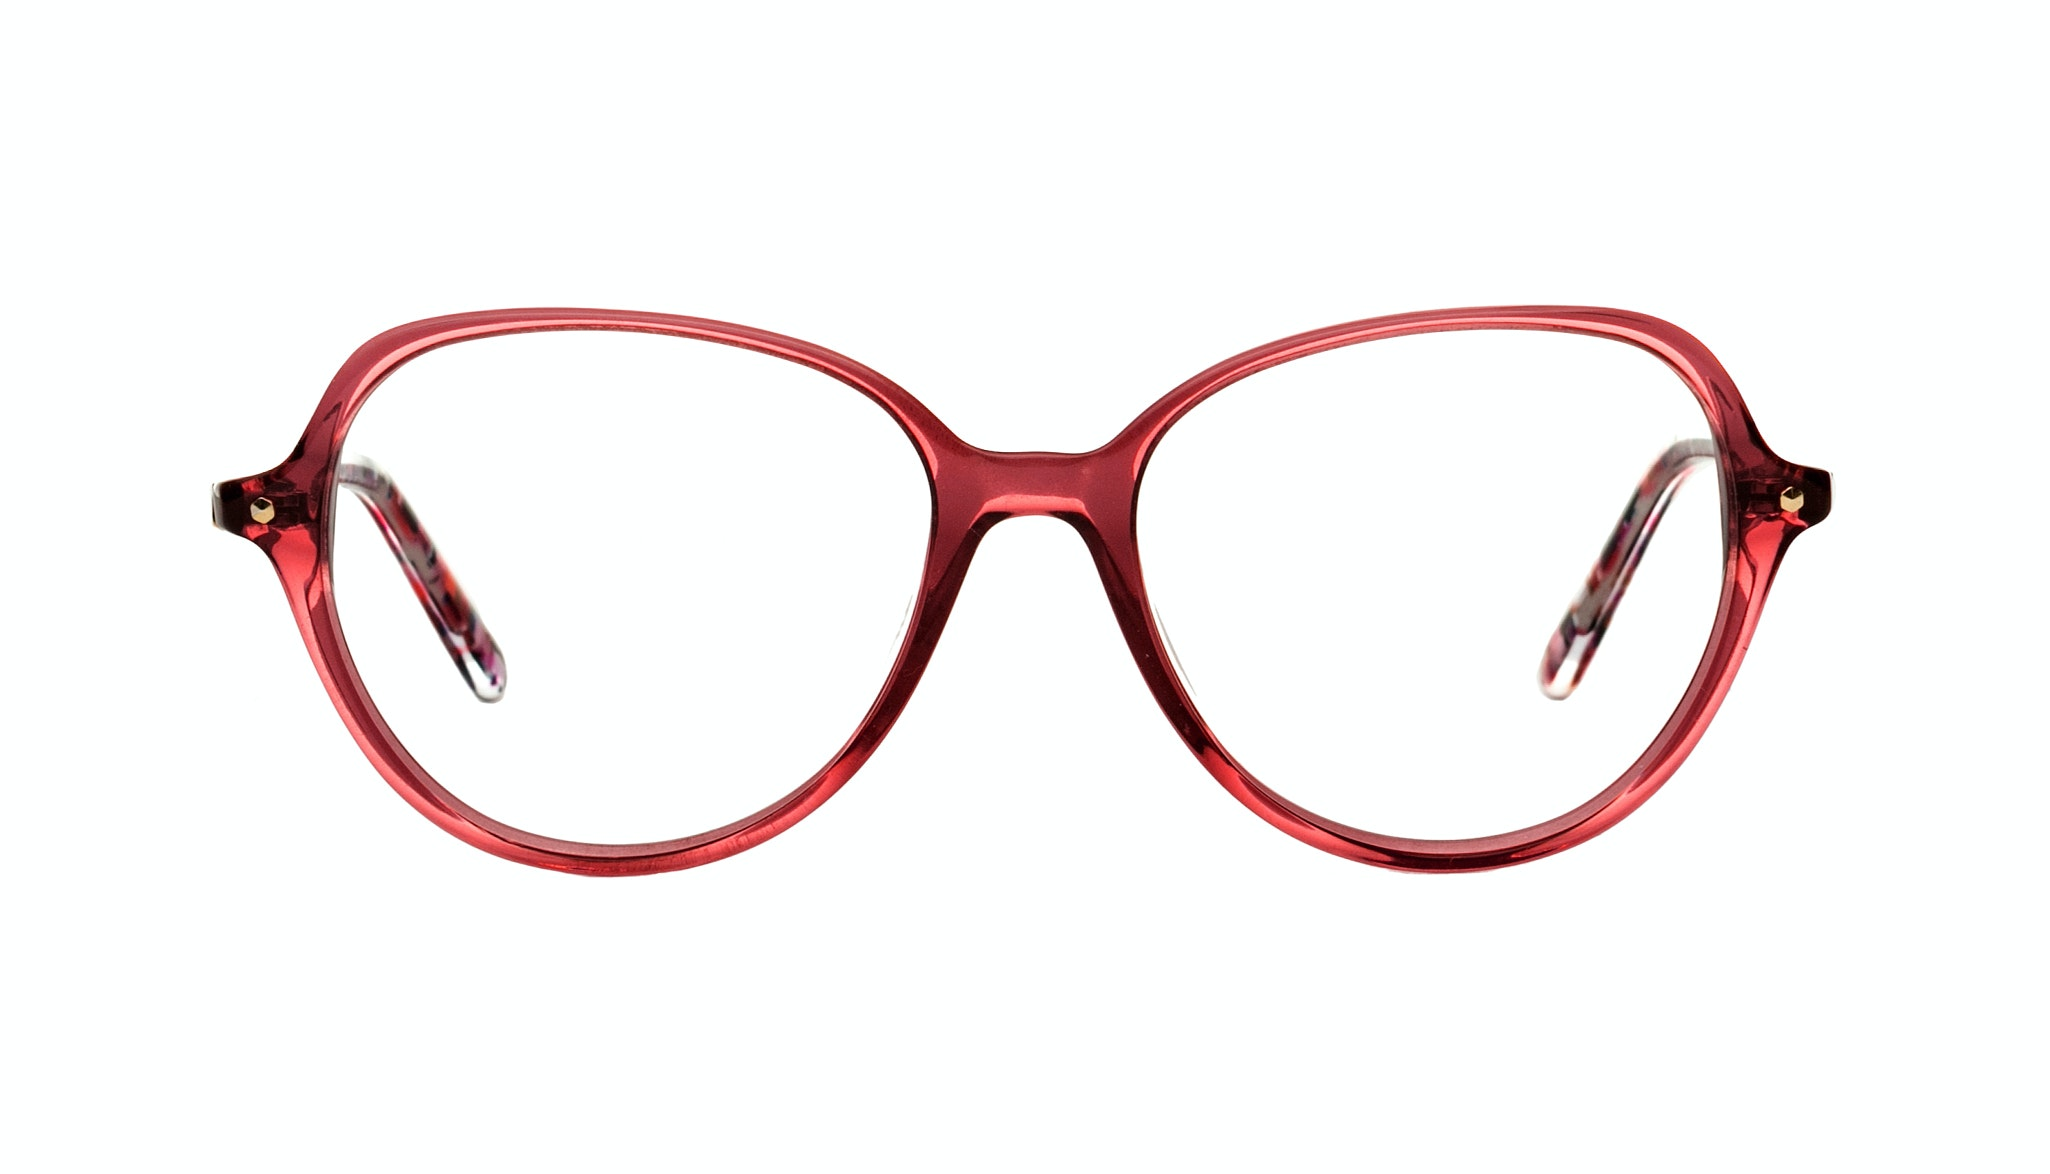 Affordable Fashion Glasses Aviator Round Eyeglasses Women Dazzle pink berry Front